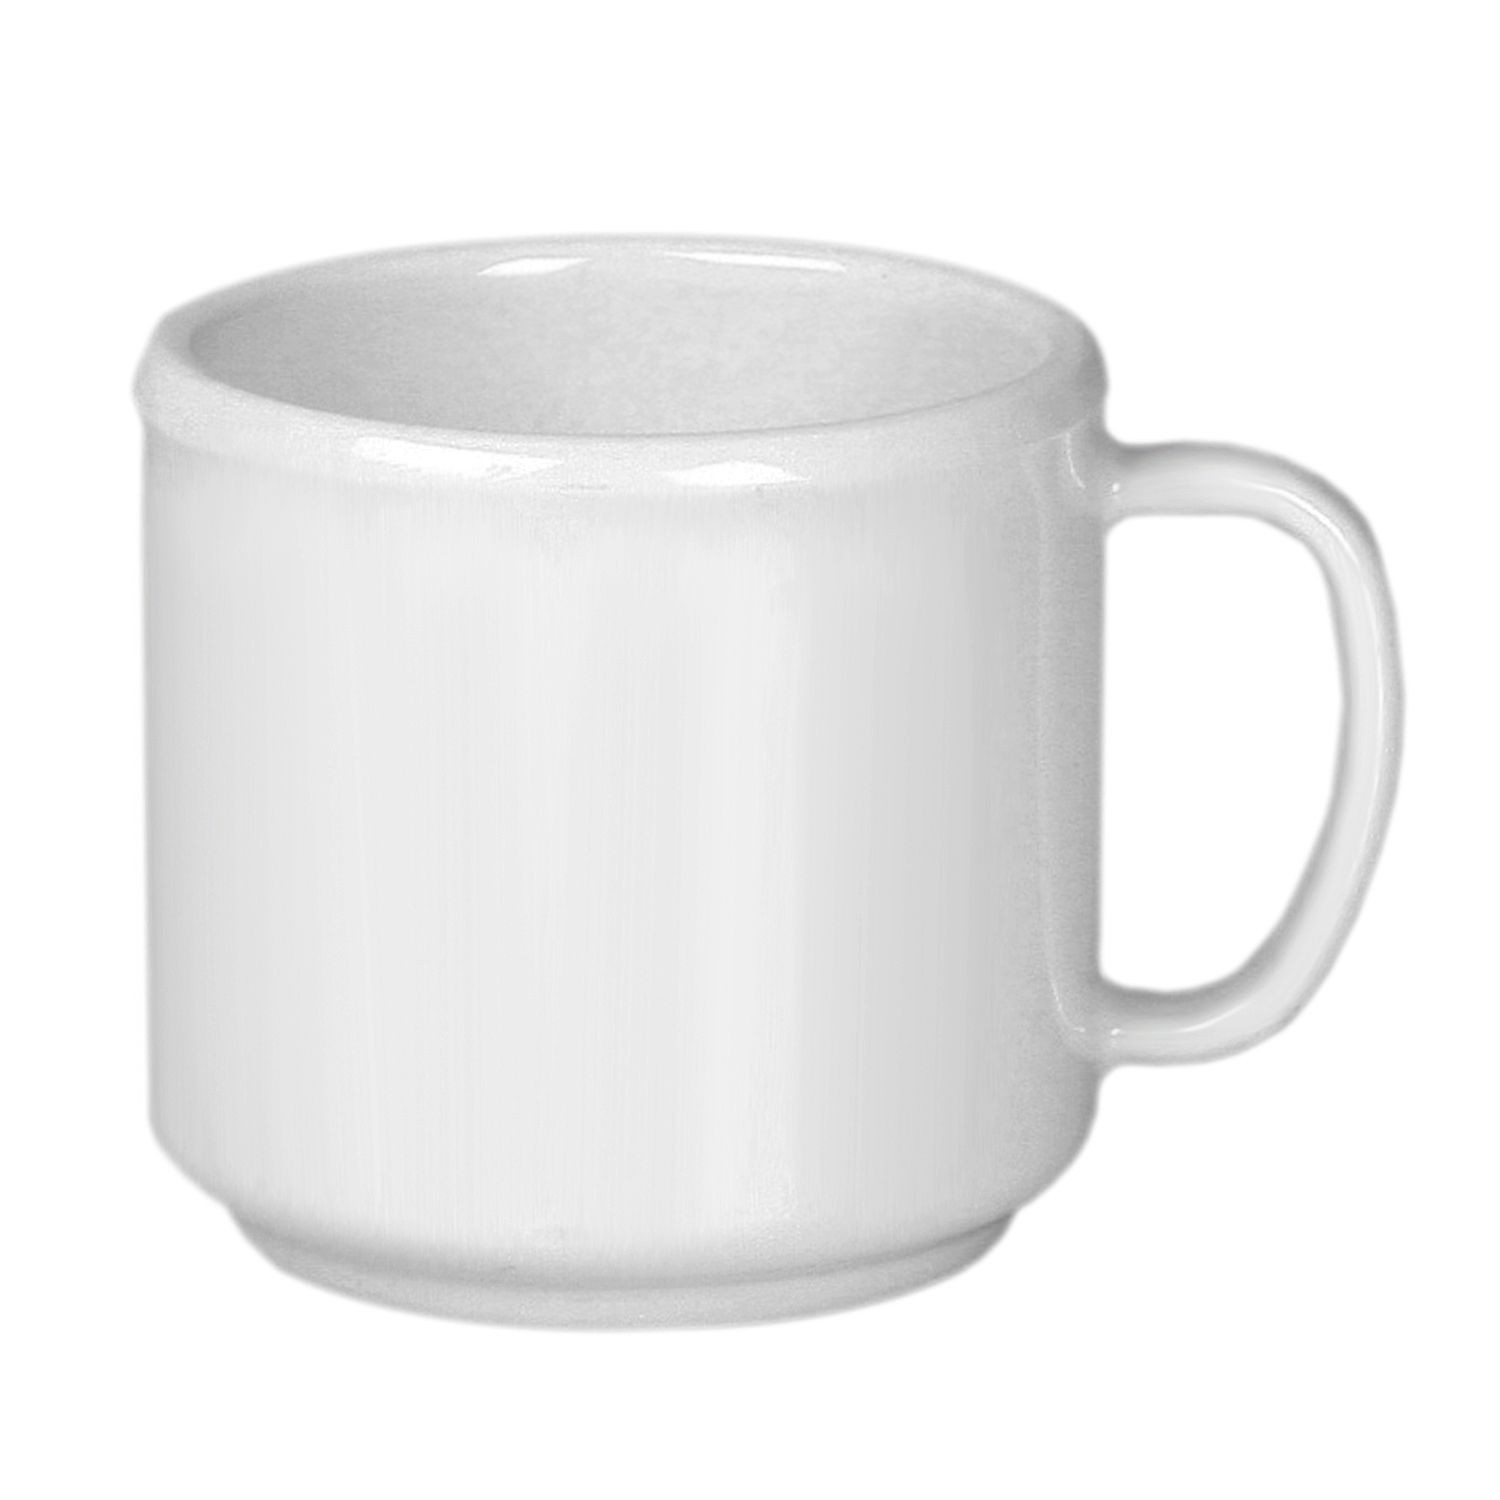 Thunder Group CR9035W White Melamine Mug 10 oz. - 1 doz